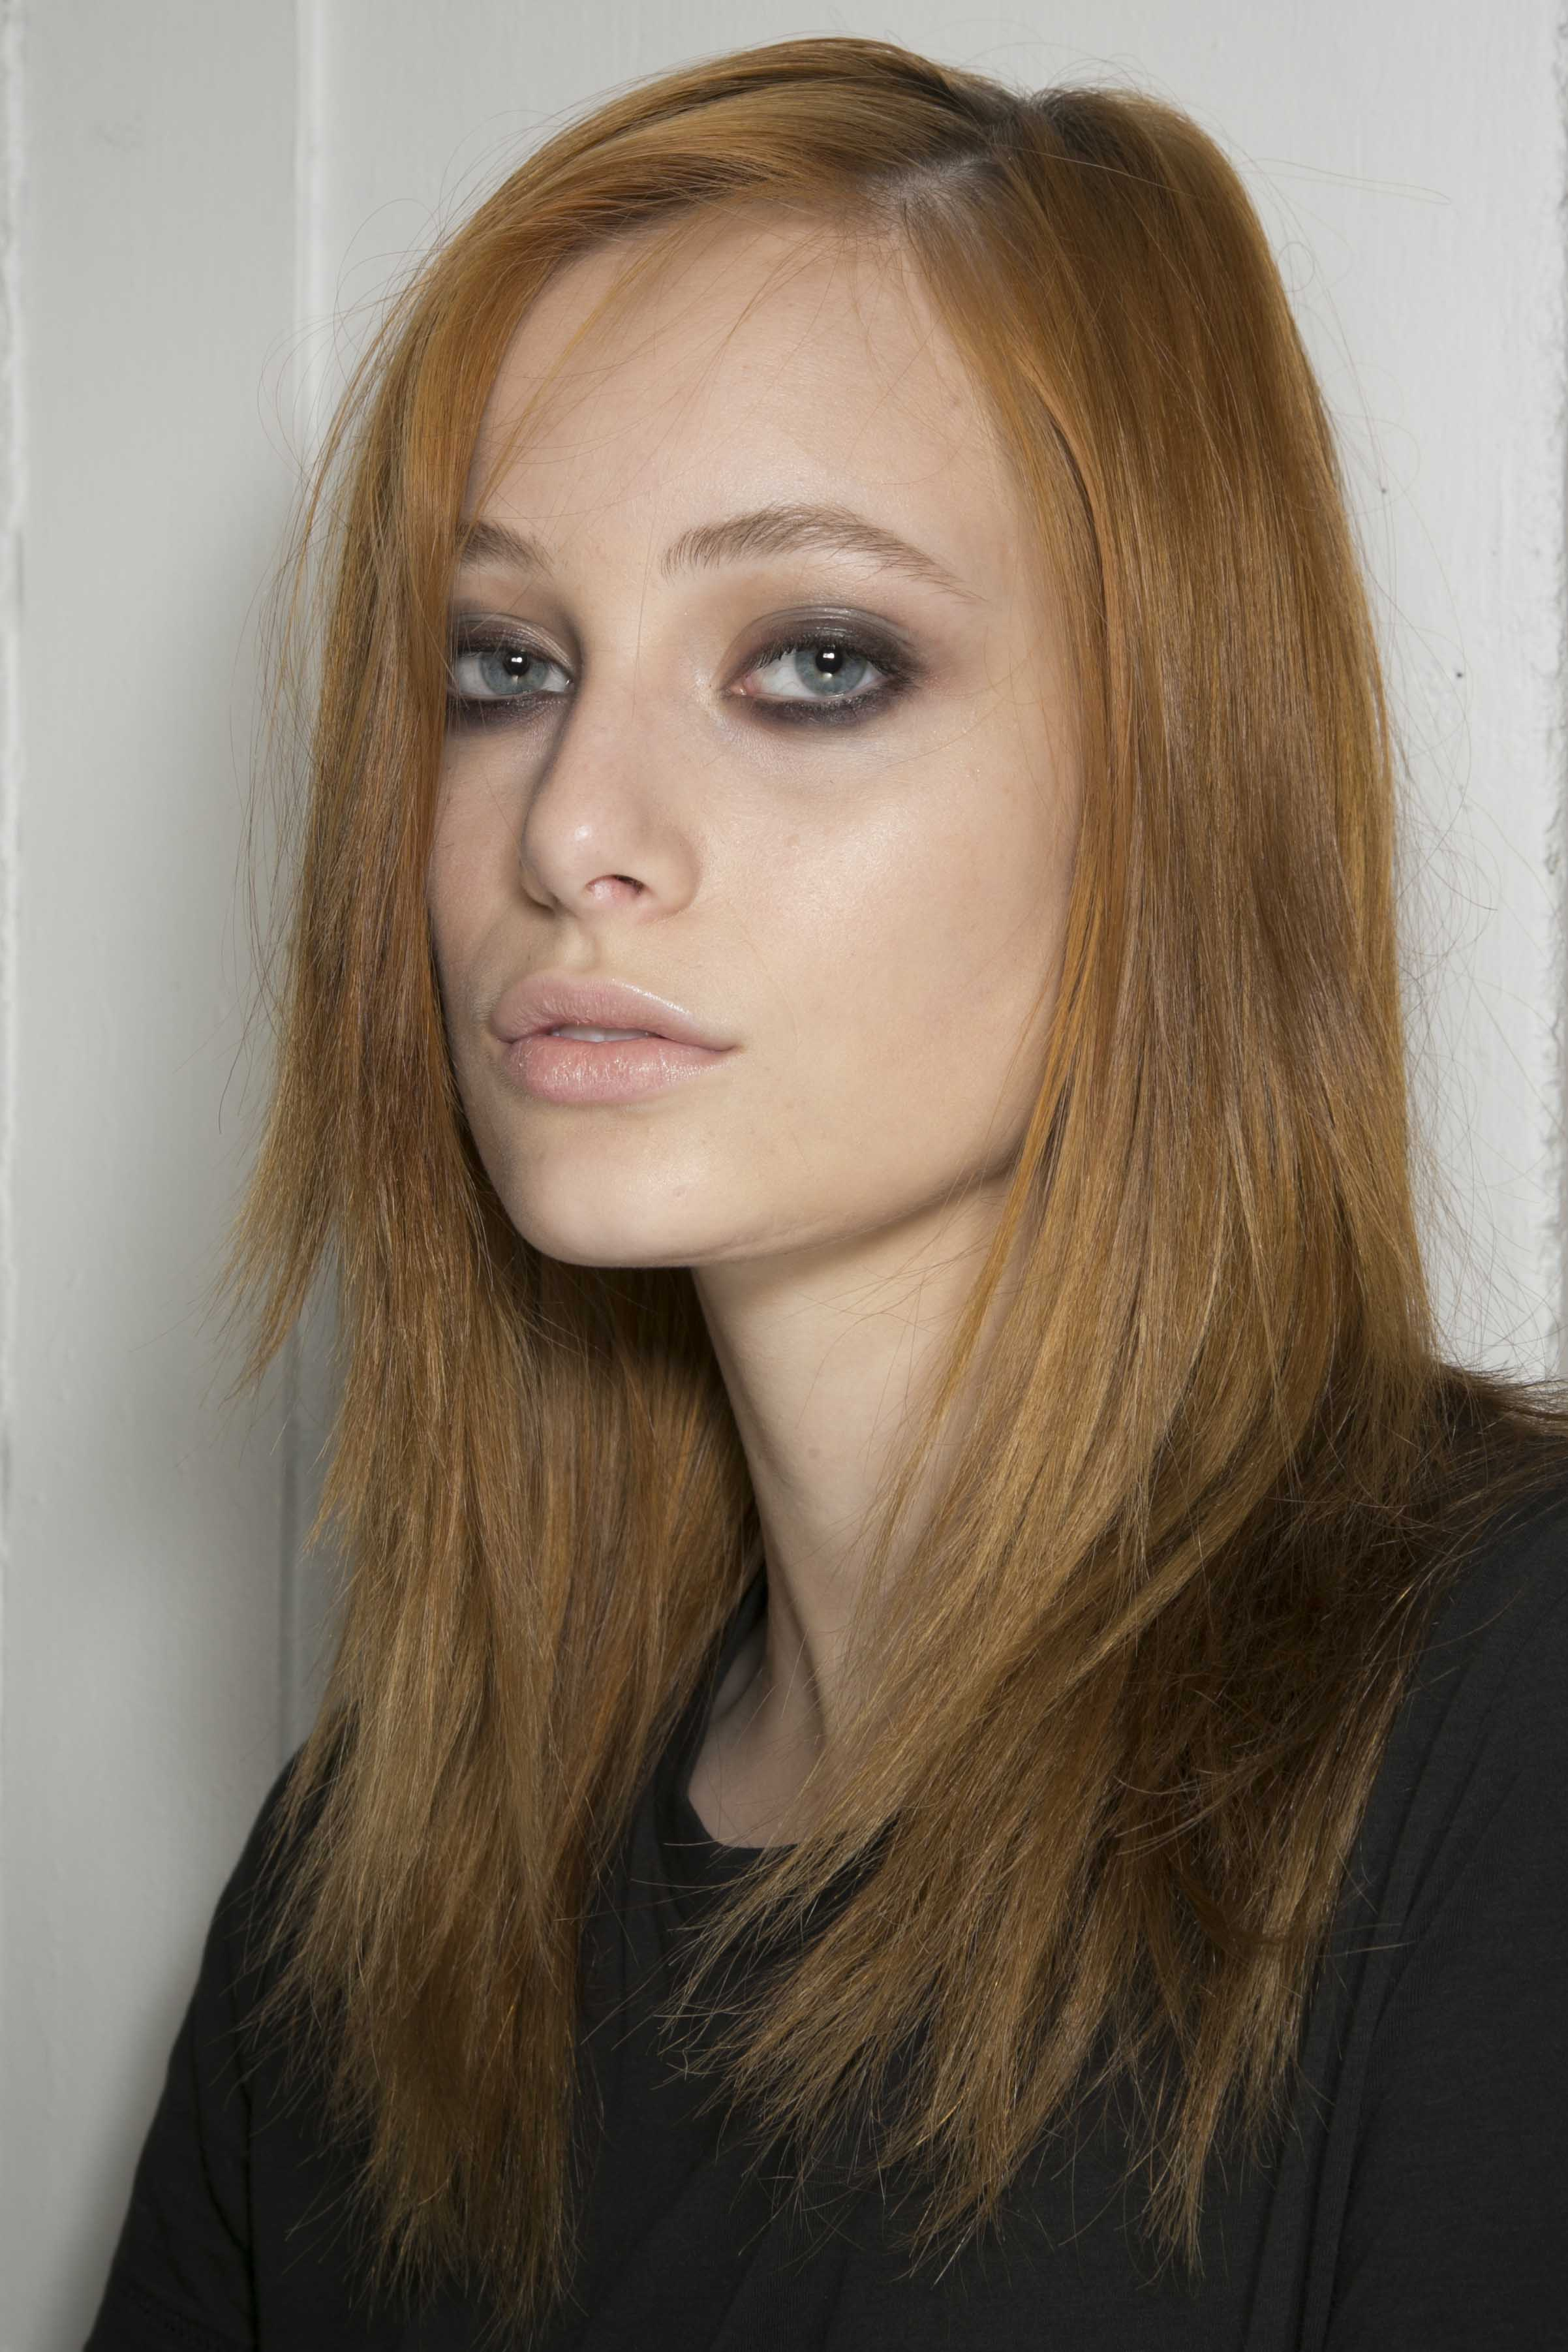 Model with mid length straight strawberry blonde hair